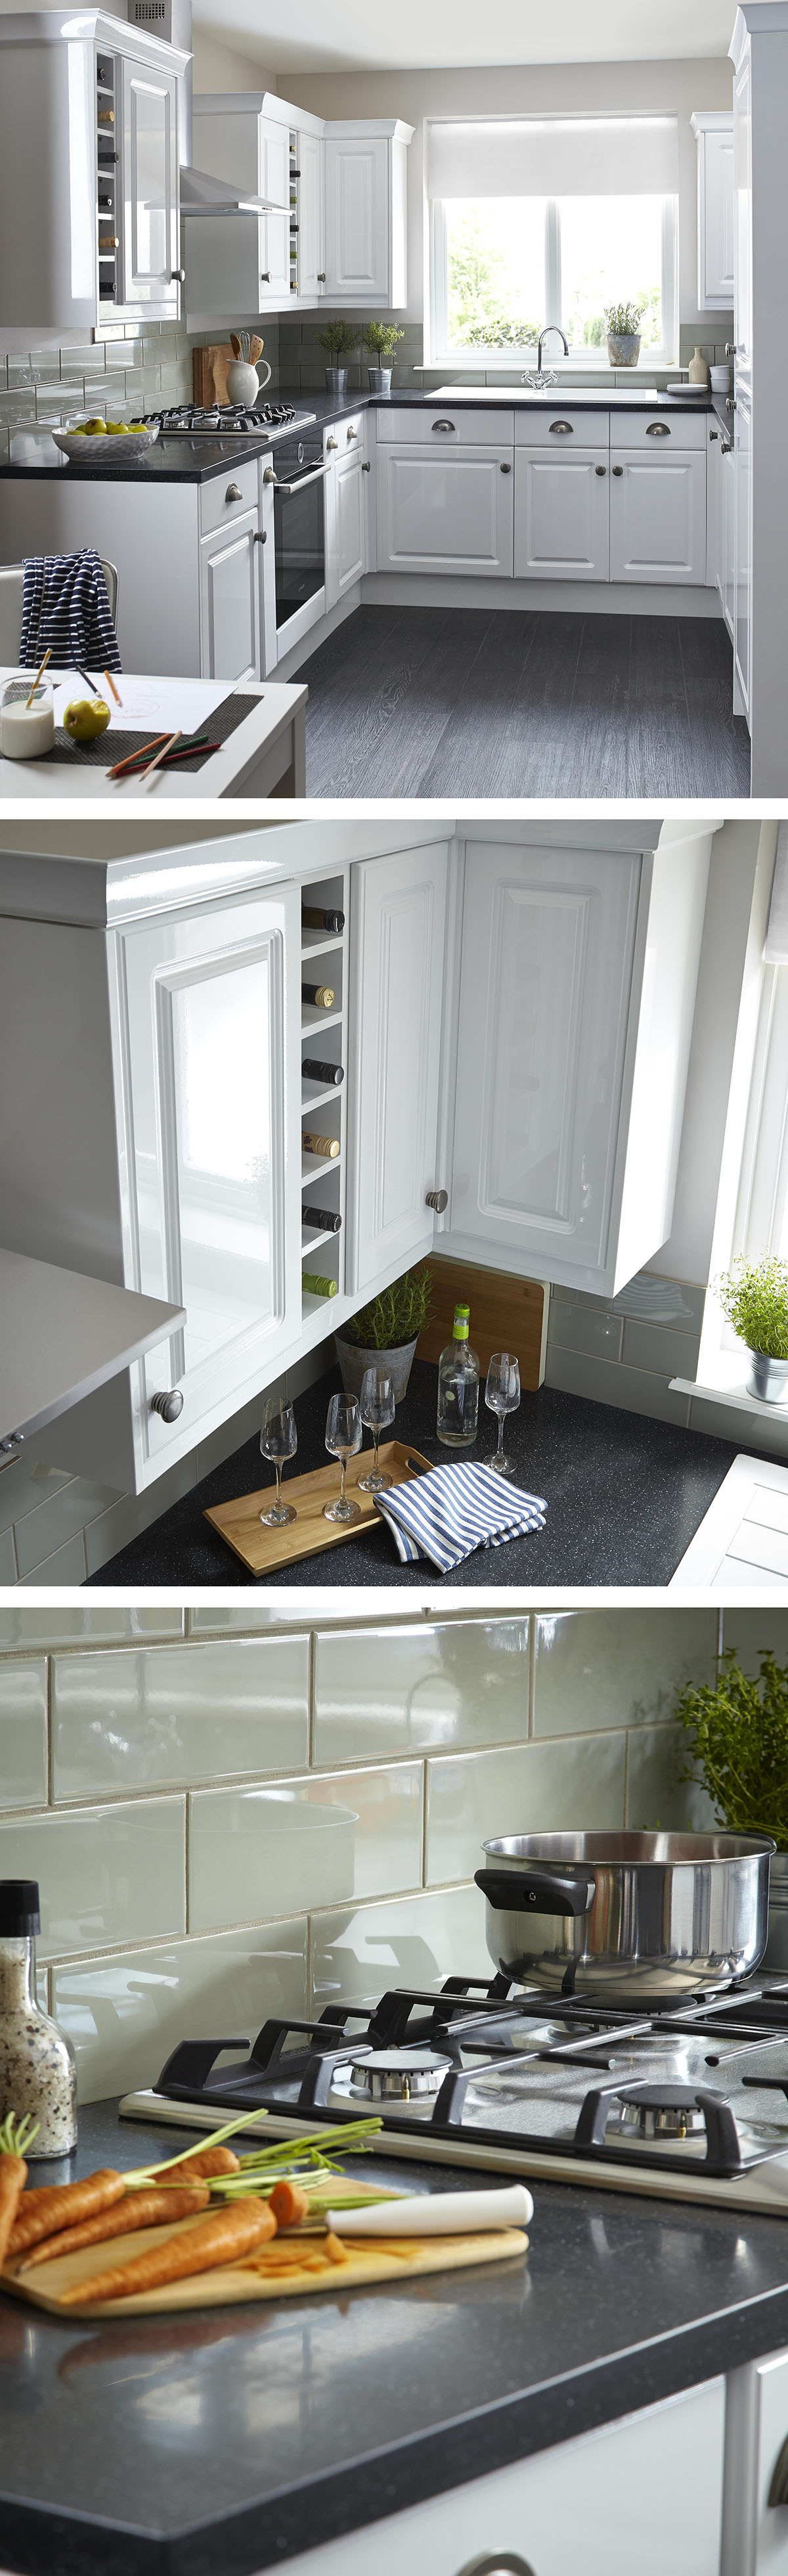 Uncategorized Design Your Dream Kitchen check out this clean sleek and modern look for your dream kitchen which kitchen